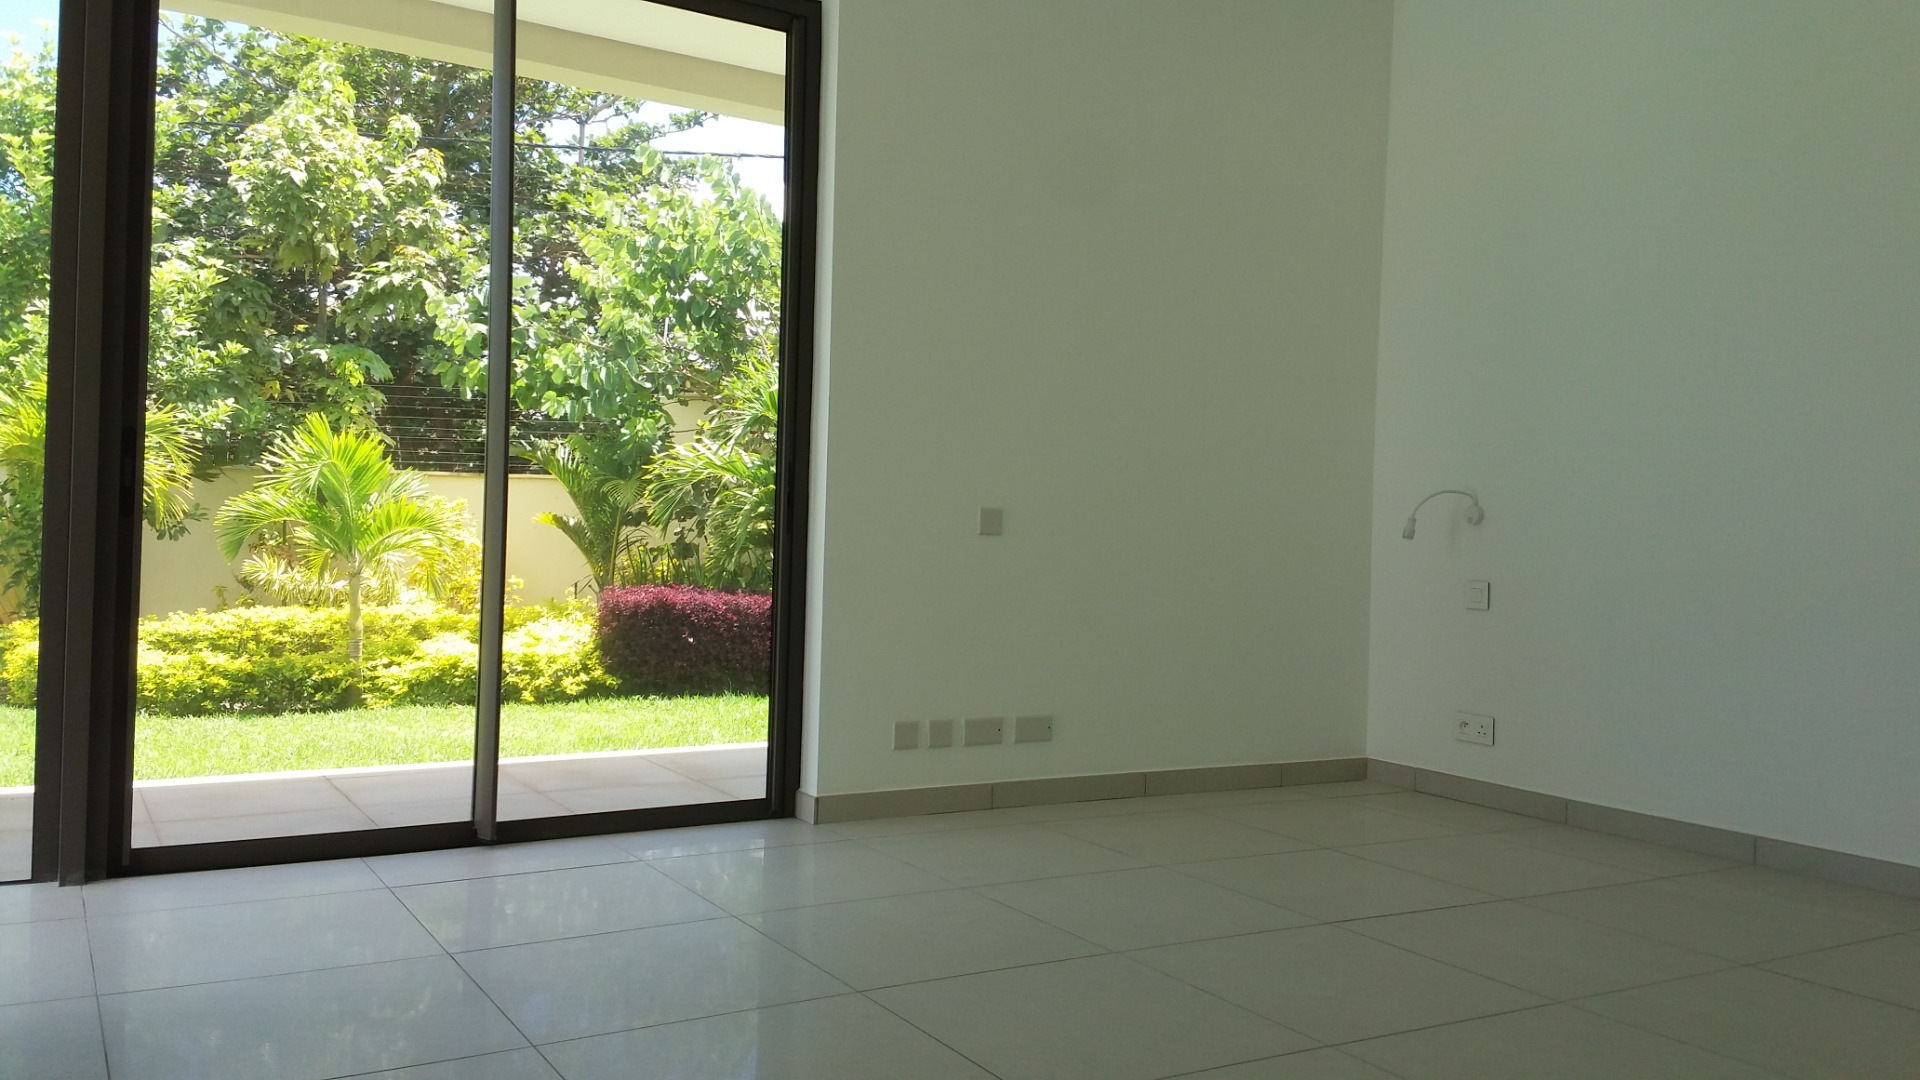 3 Bedroom House For Sale in Grand Baie